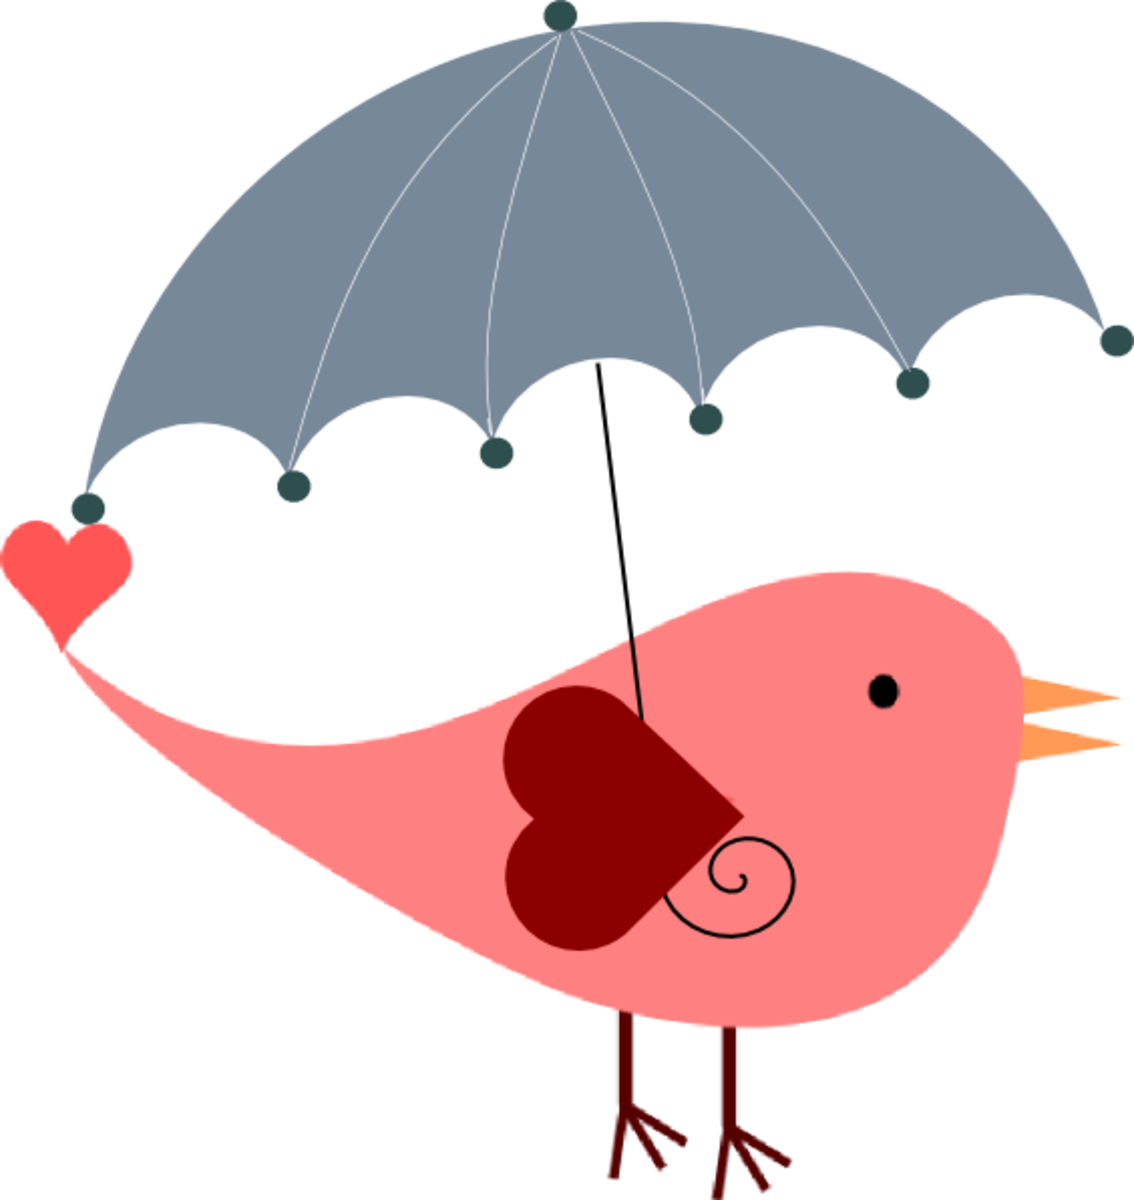 Bird with Umbrella